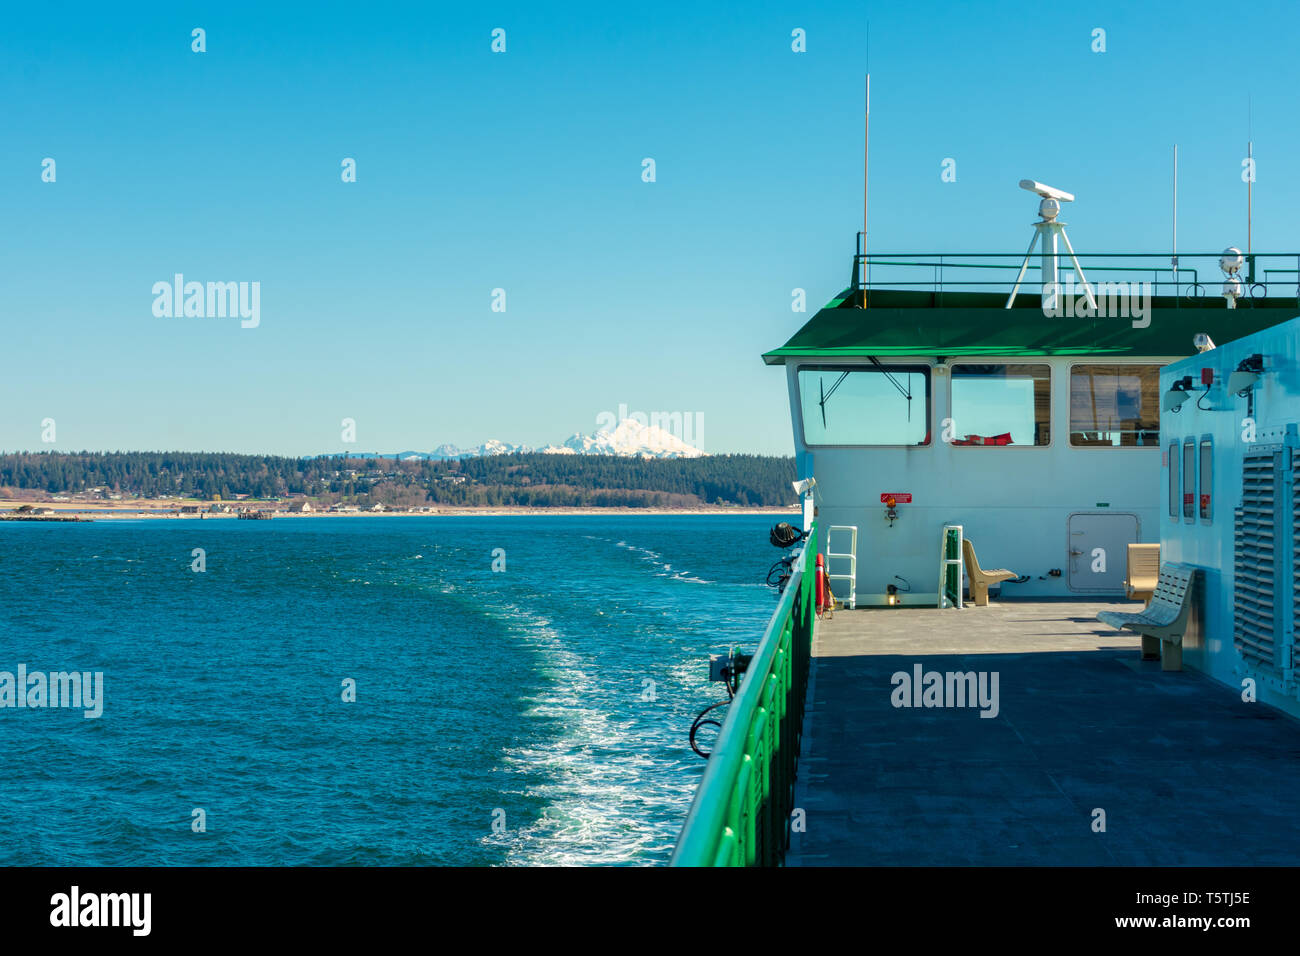 Mount Baker Seen From Washington State Ferry - Stock Image